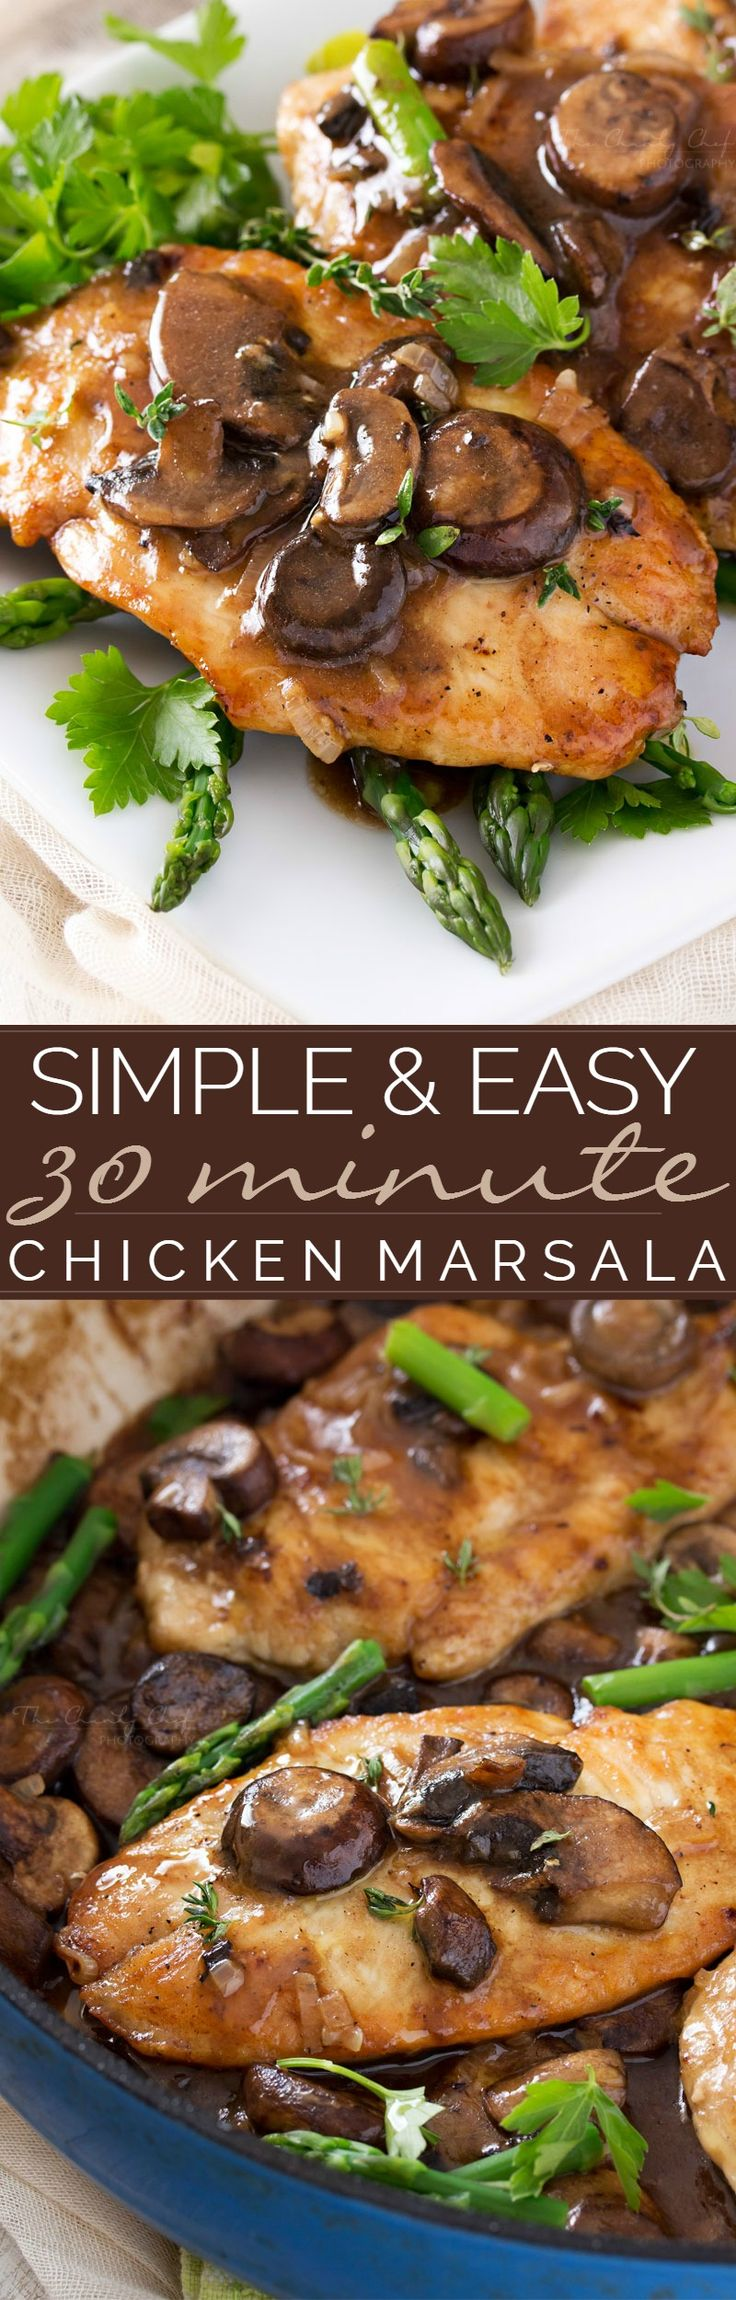 Easy Chicken Marsala | This easy chicken Marsala dish takes just 30 minutes to make! Classically savory and flavorful, this is one dish you'll love to cook time and time again!